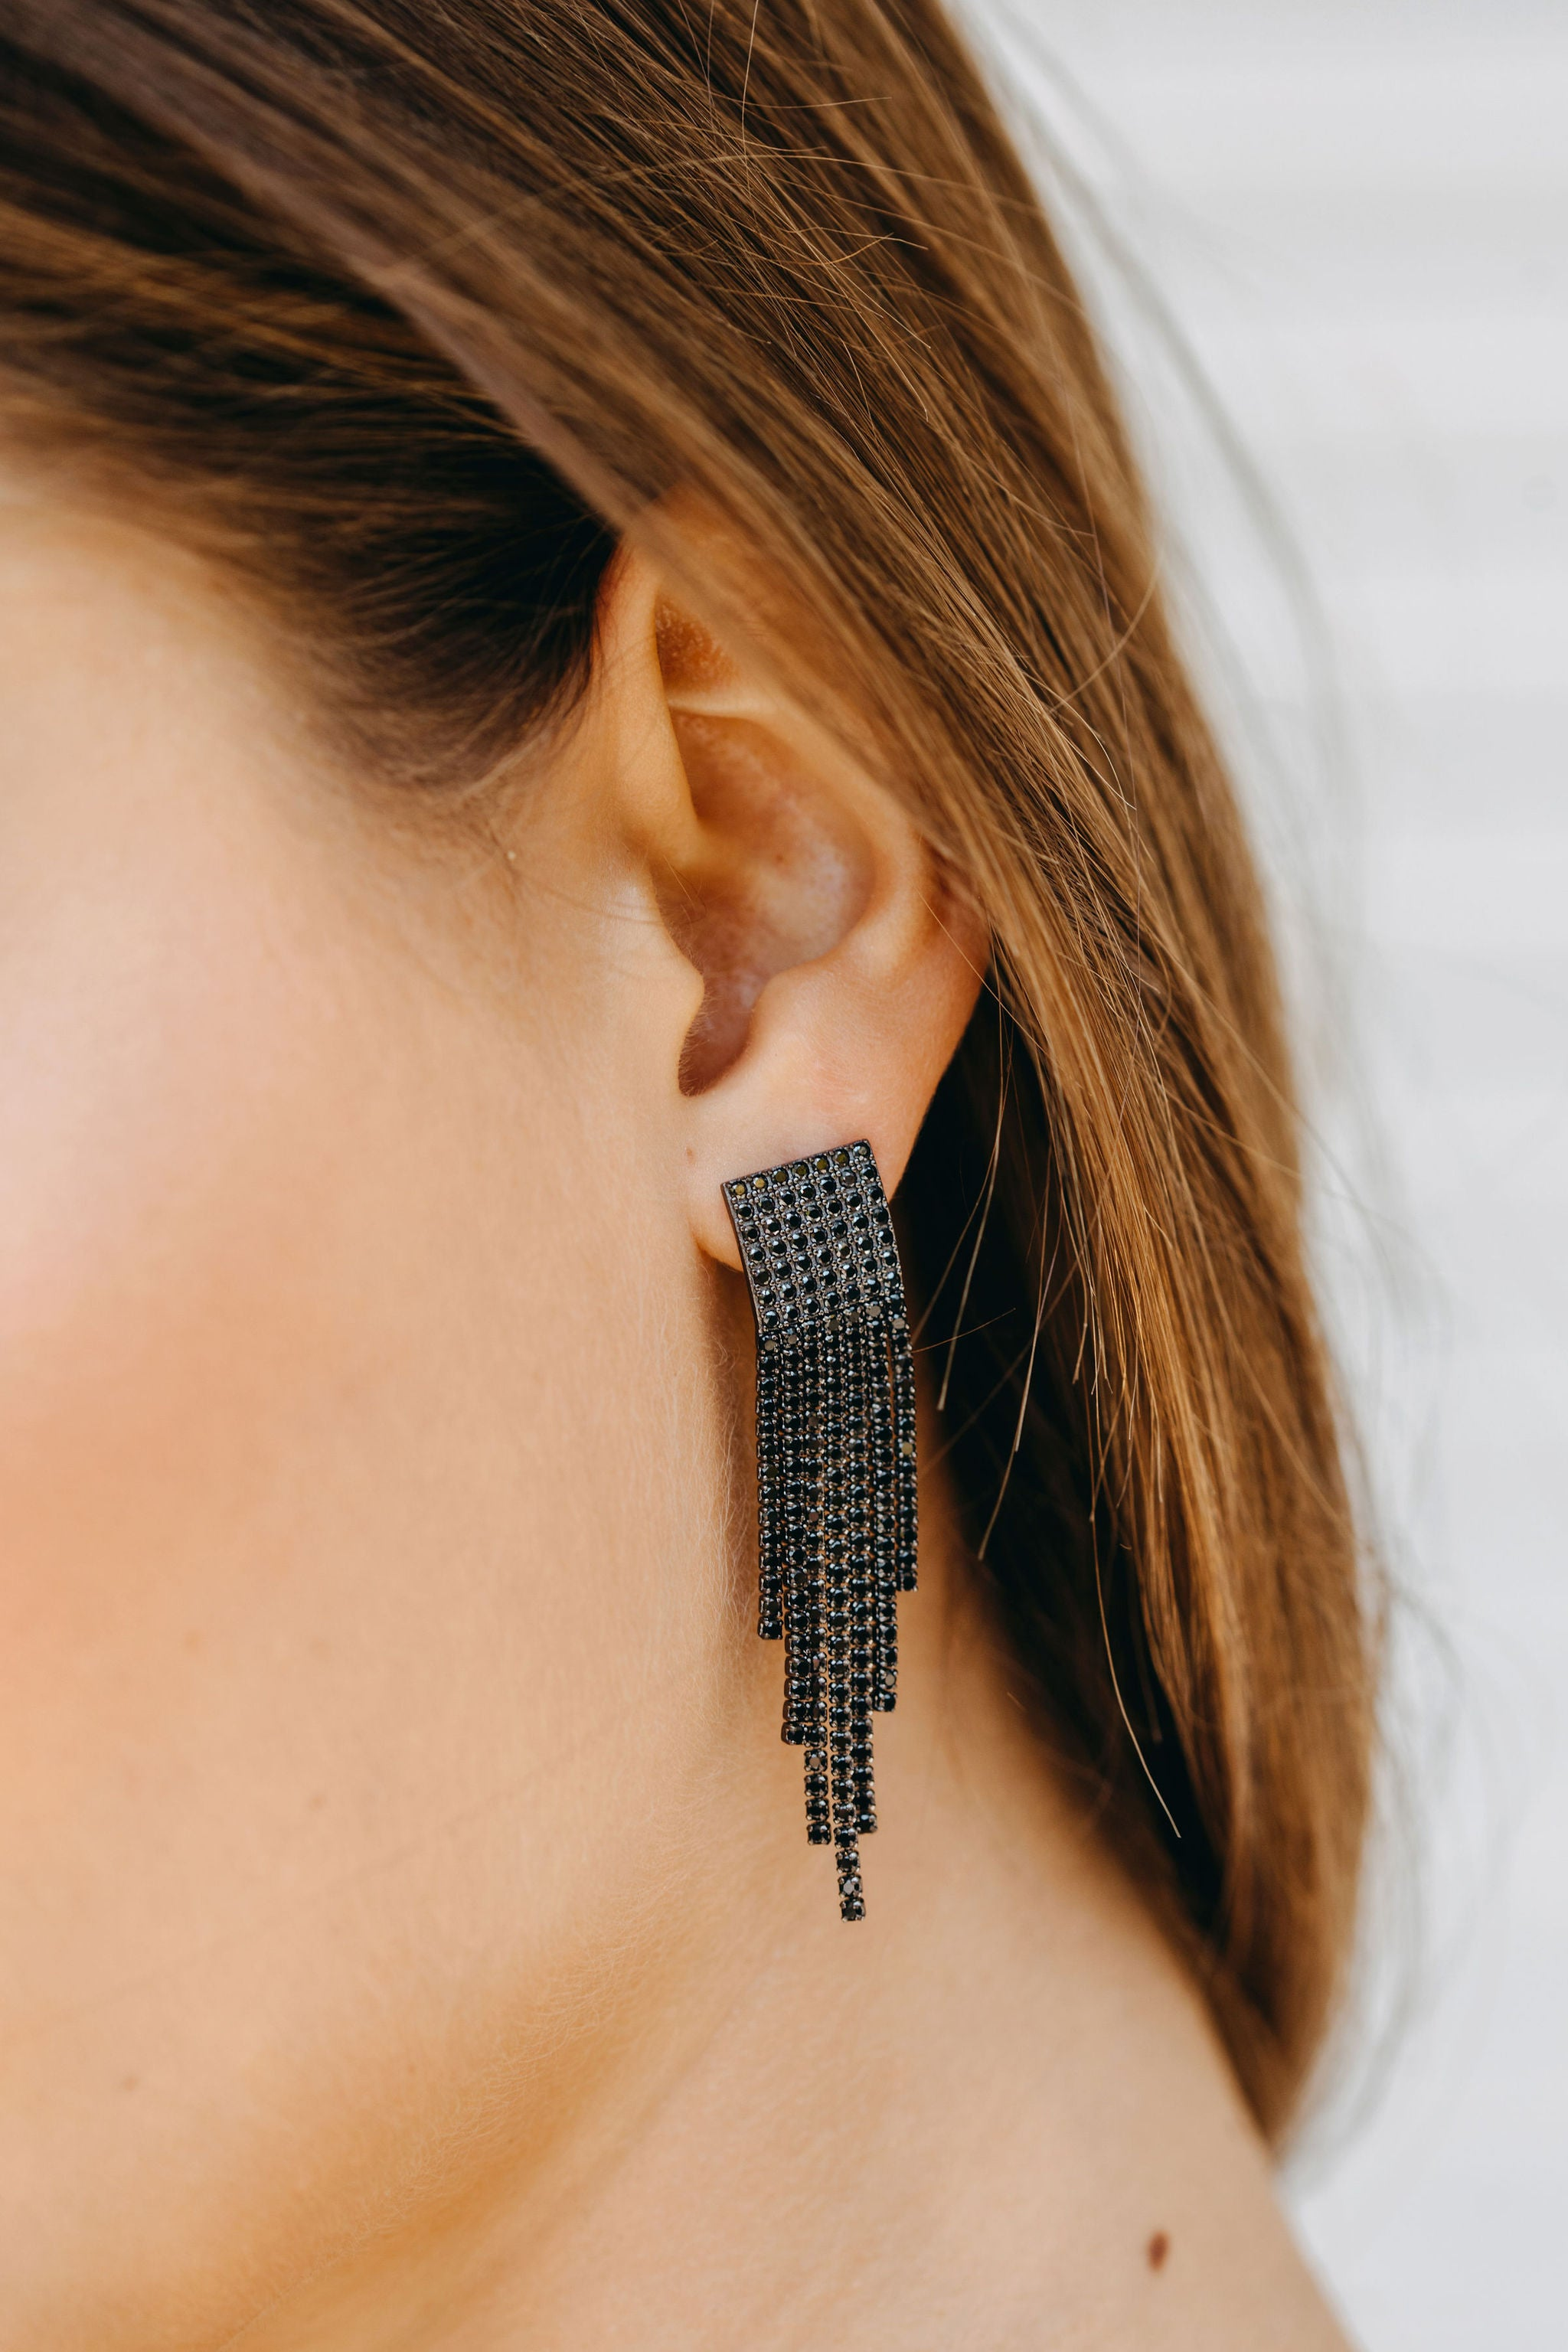 Styled image of our Equinox earrings being worn by brunette woman.